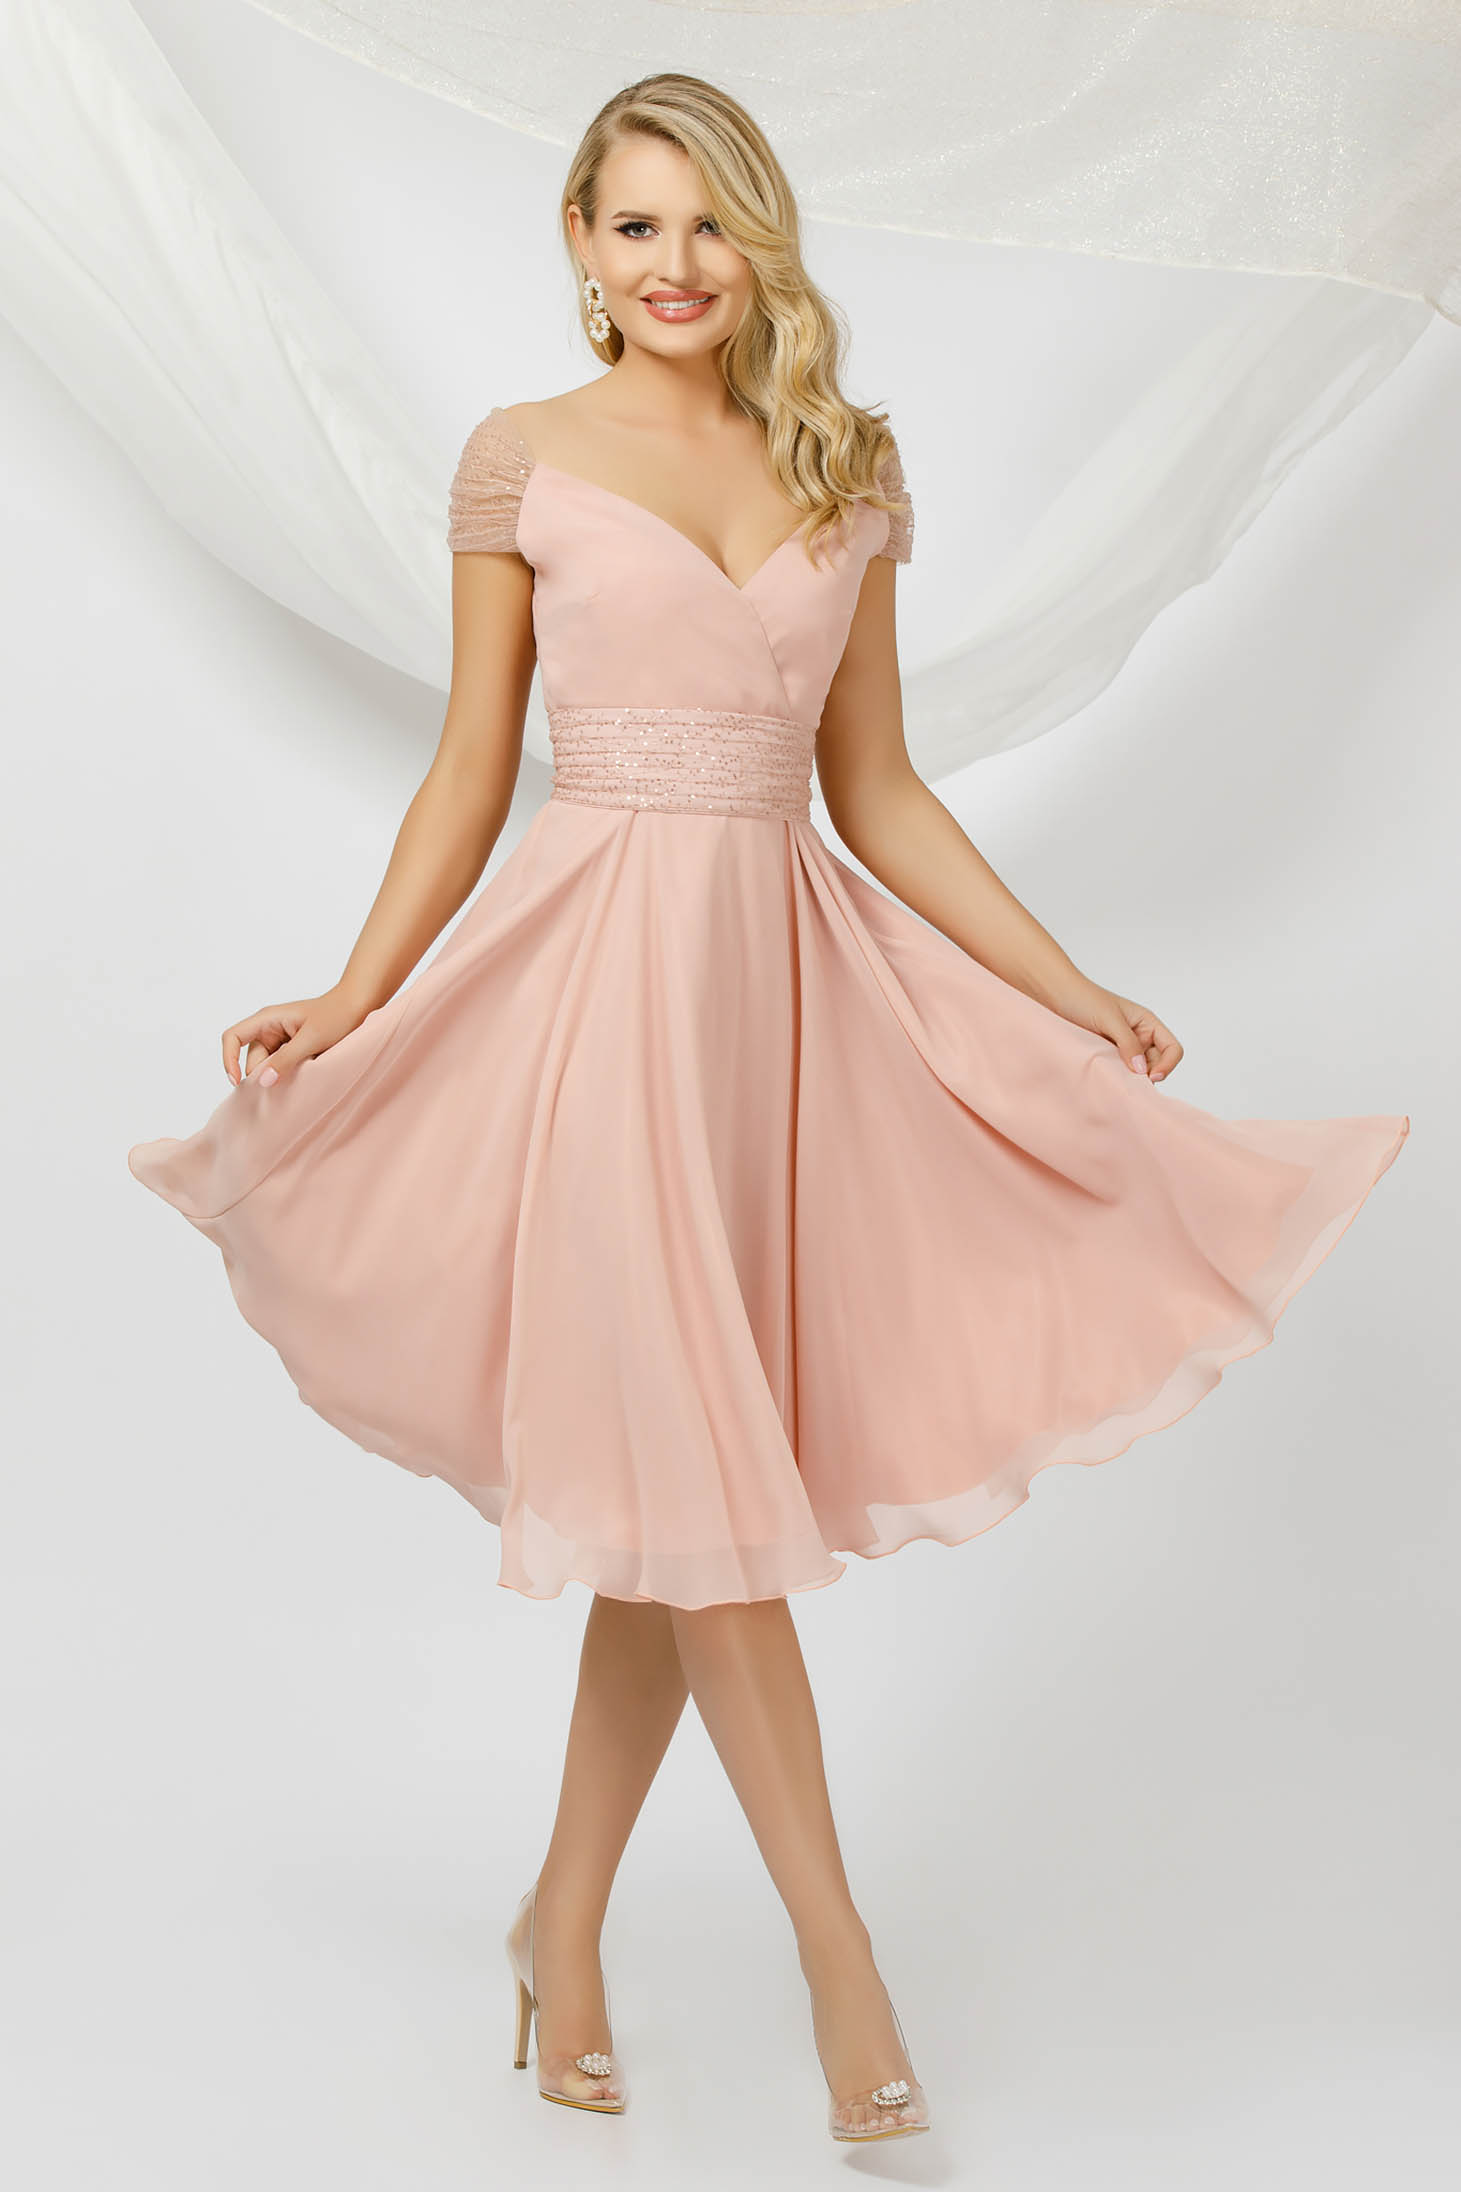 Lightpink dress occasional thin fabric from veil fabric with sequin embellished details midi